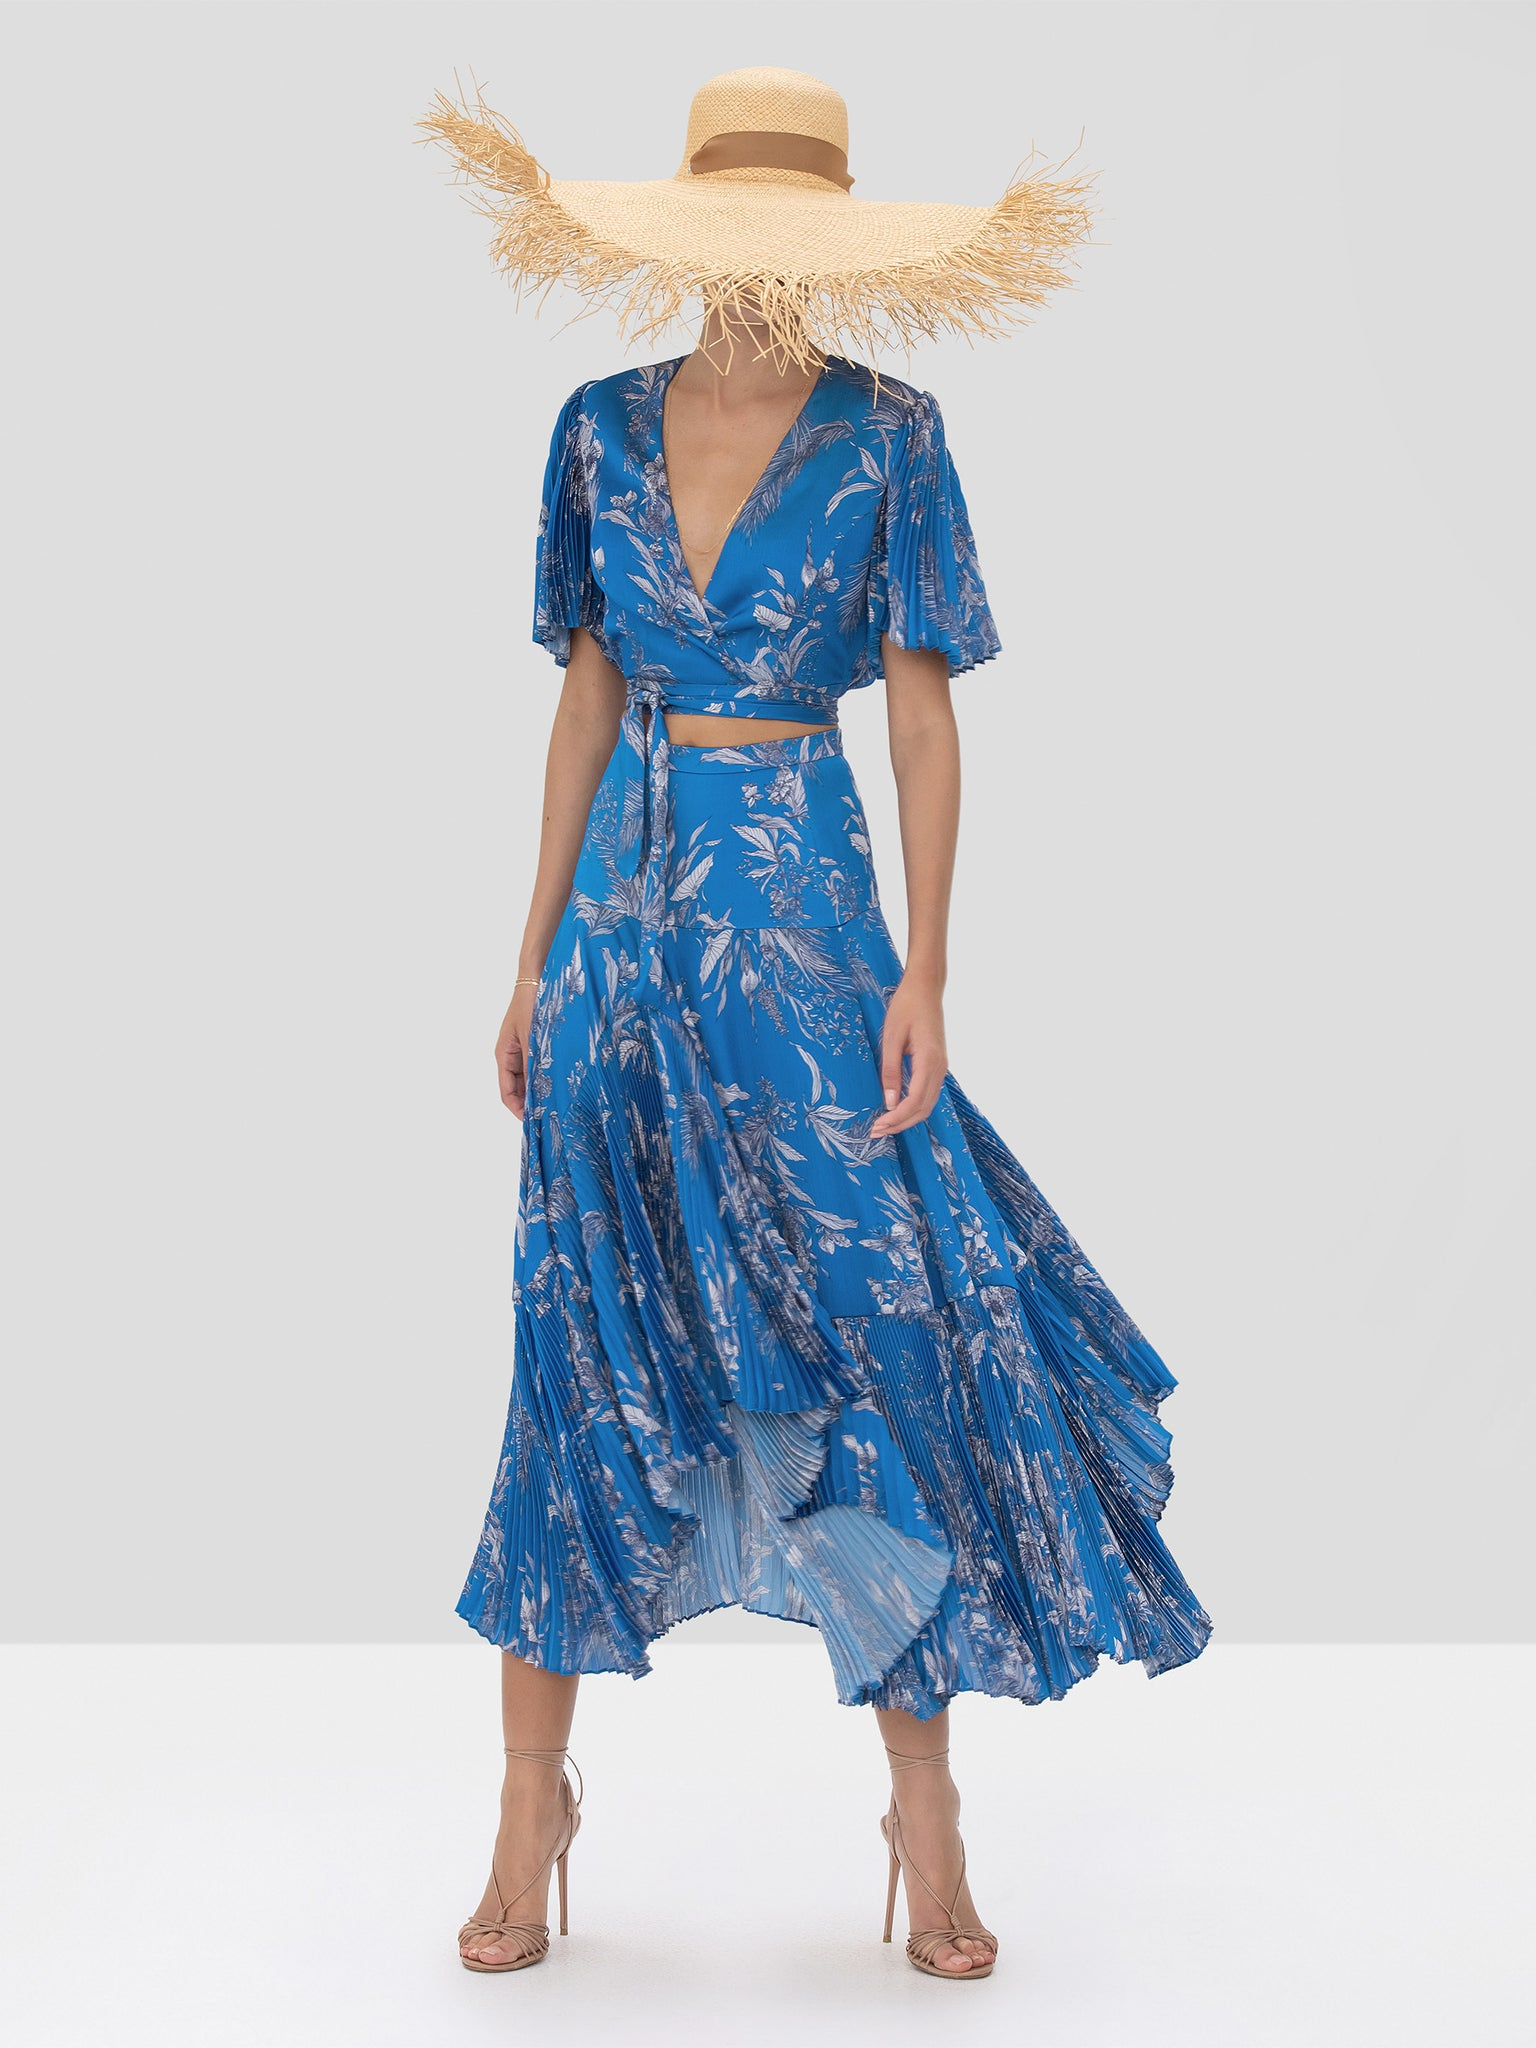 Alexis Rylie Top and Tarou Skirt in Blue Palm Spring Summer 2020 Collection